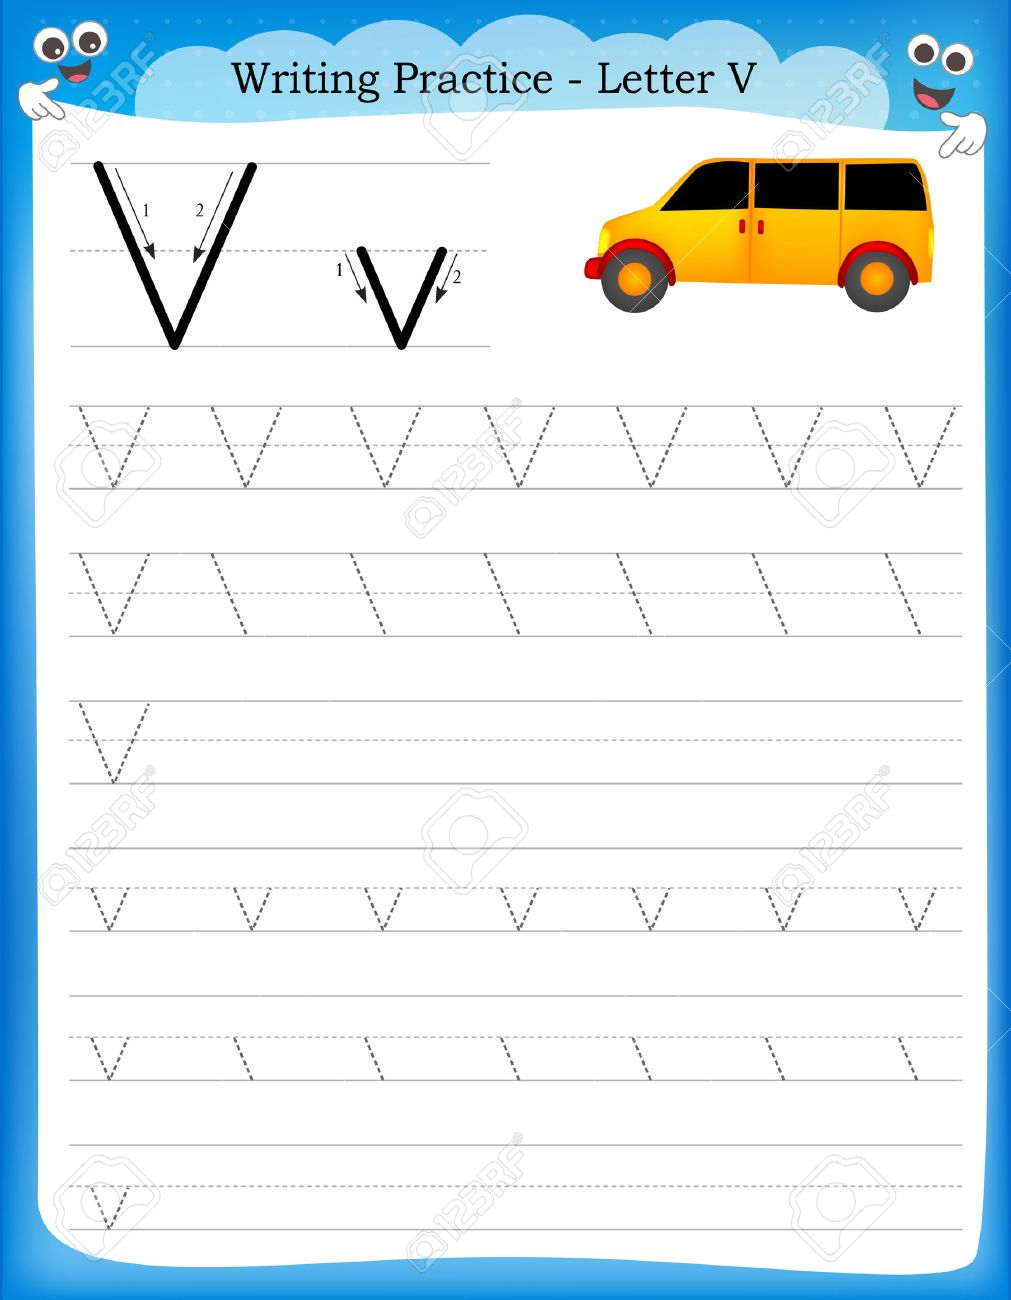 Writing Practice Letter V Printable Worksheet With Clip Art ...